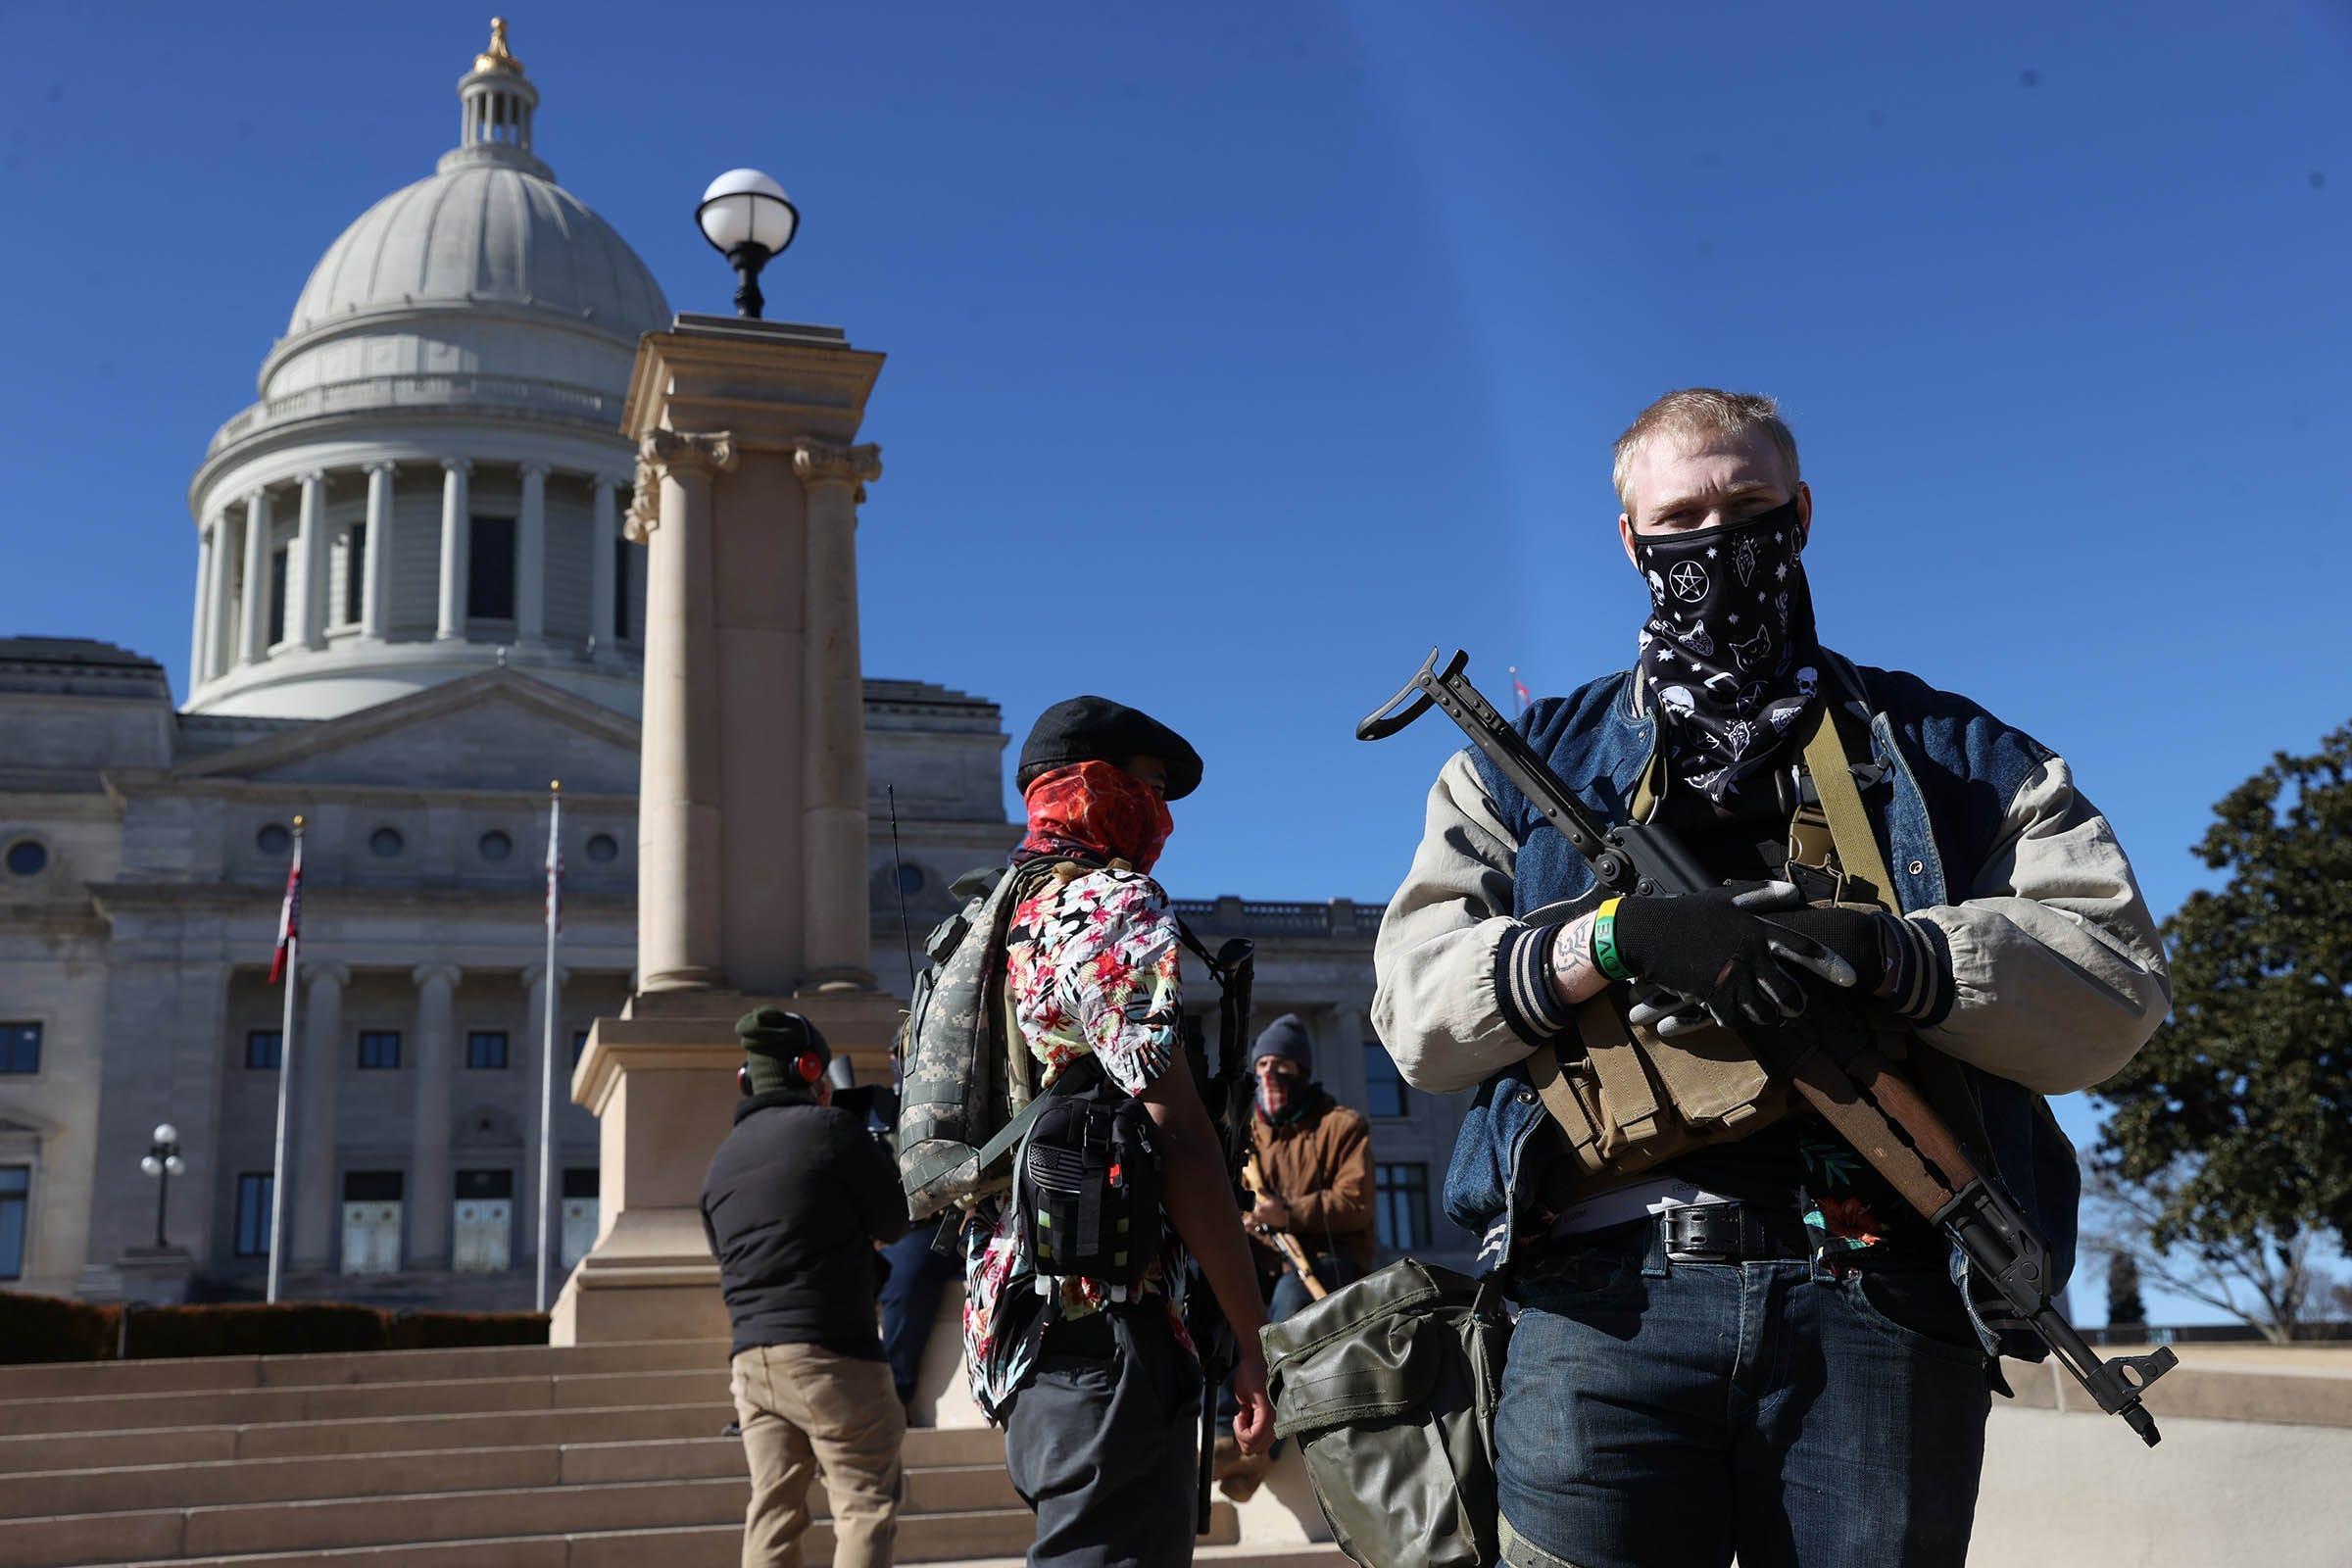 A man who only identified himself as Scott and a small group of armed protesters stand outside the Arkansas State Capitol on Jan. 17, 2021.